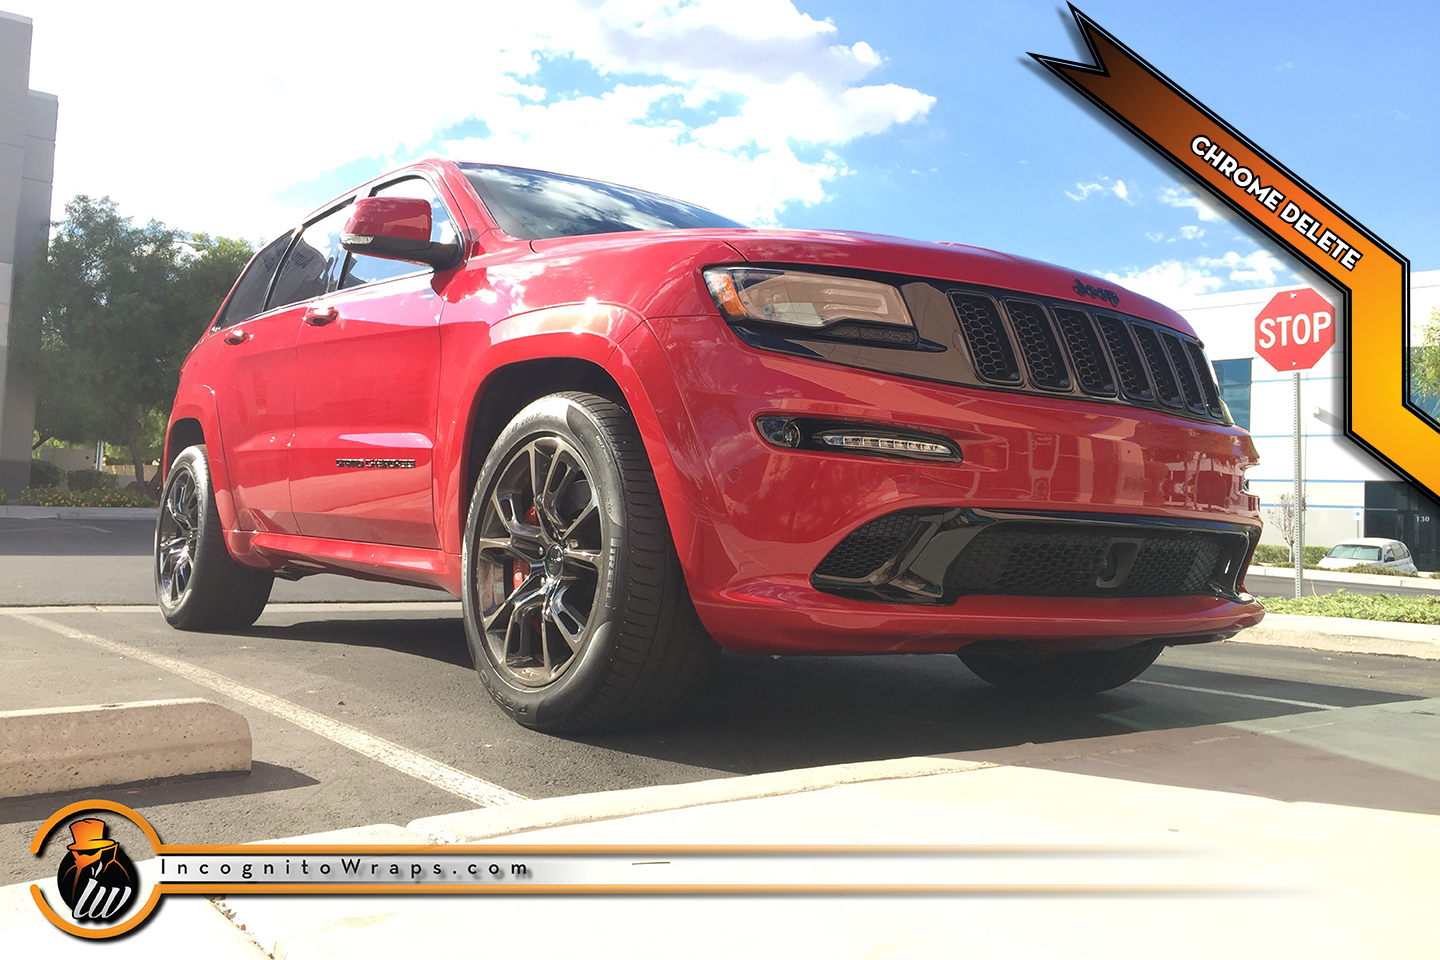 Jeep Grand Cherokee SRT8 - Gloss Black Chrome Delete